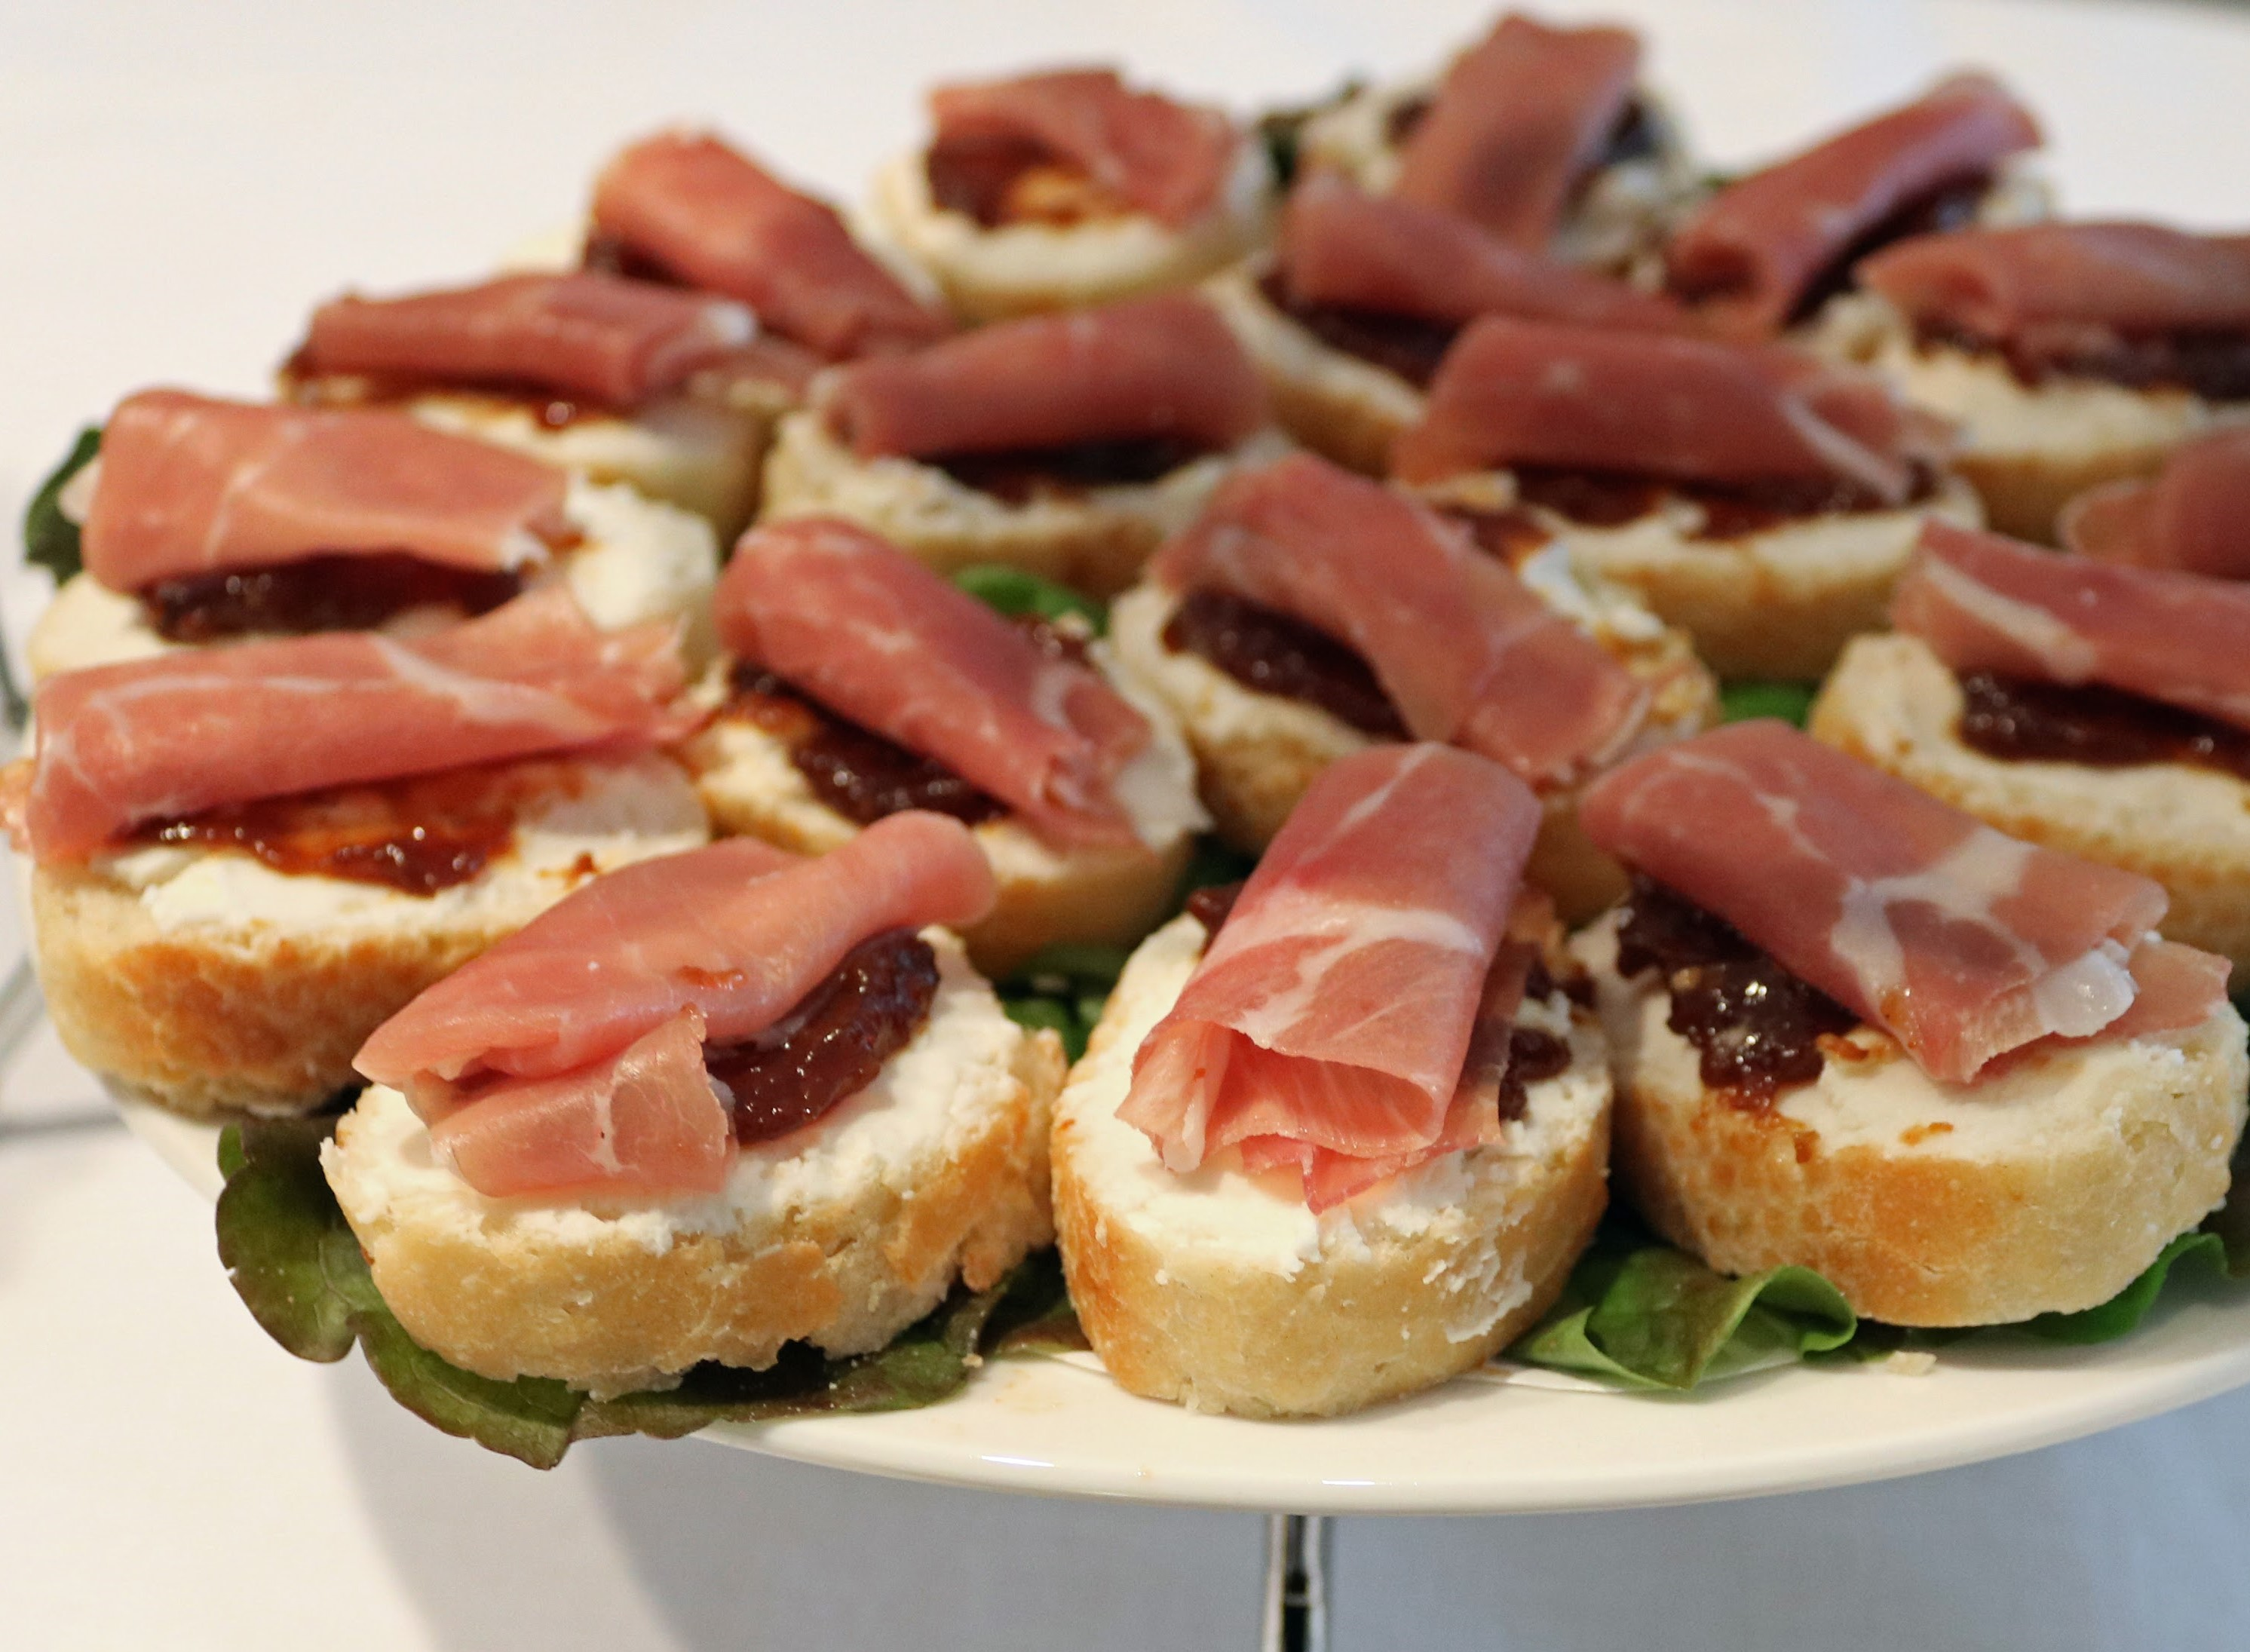 proscuitto on baguette